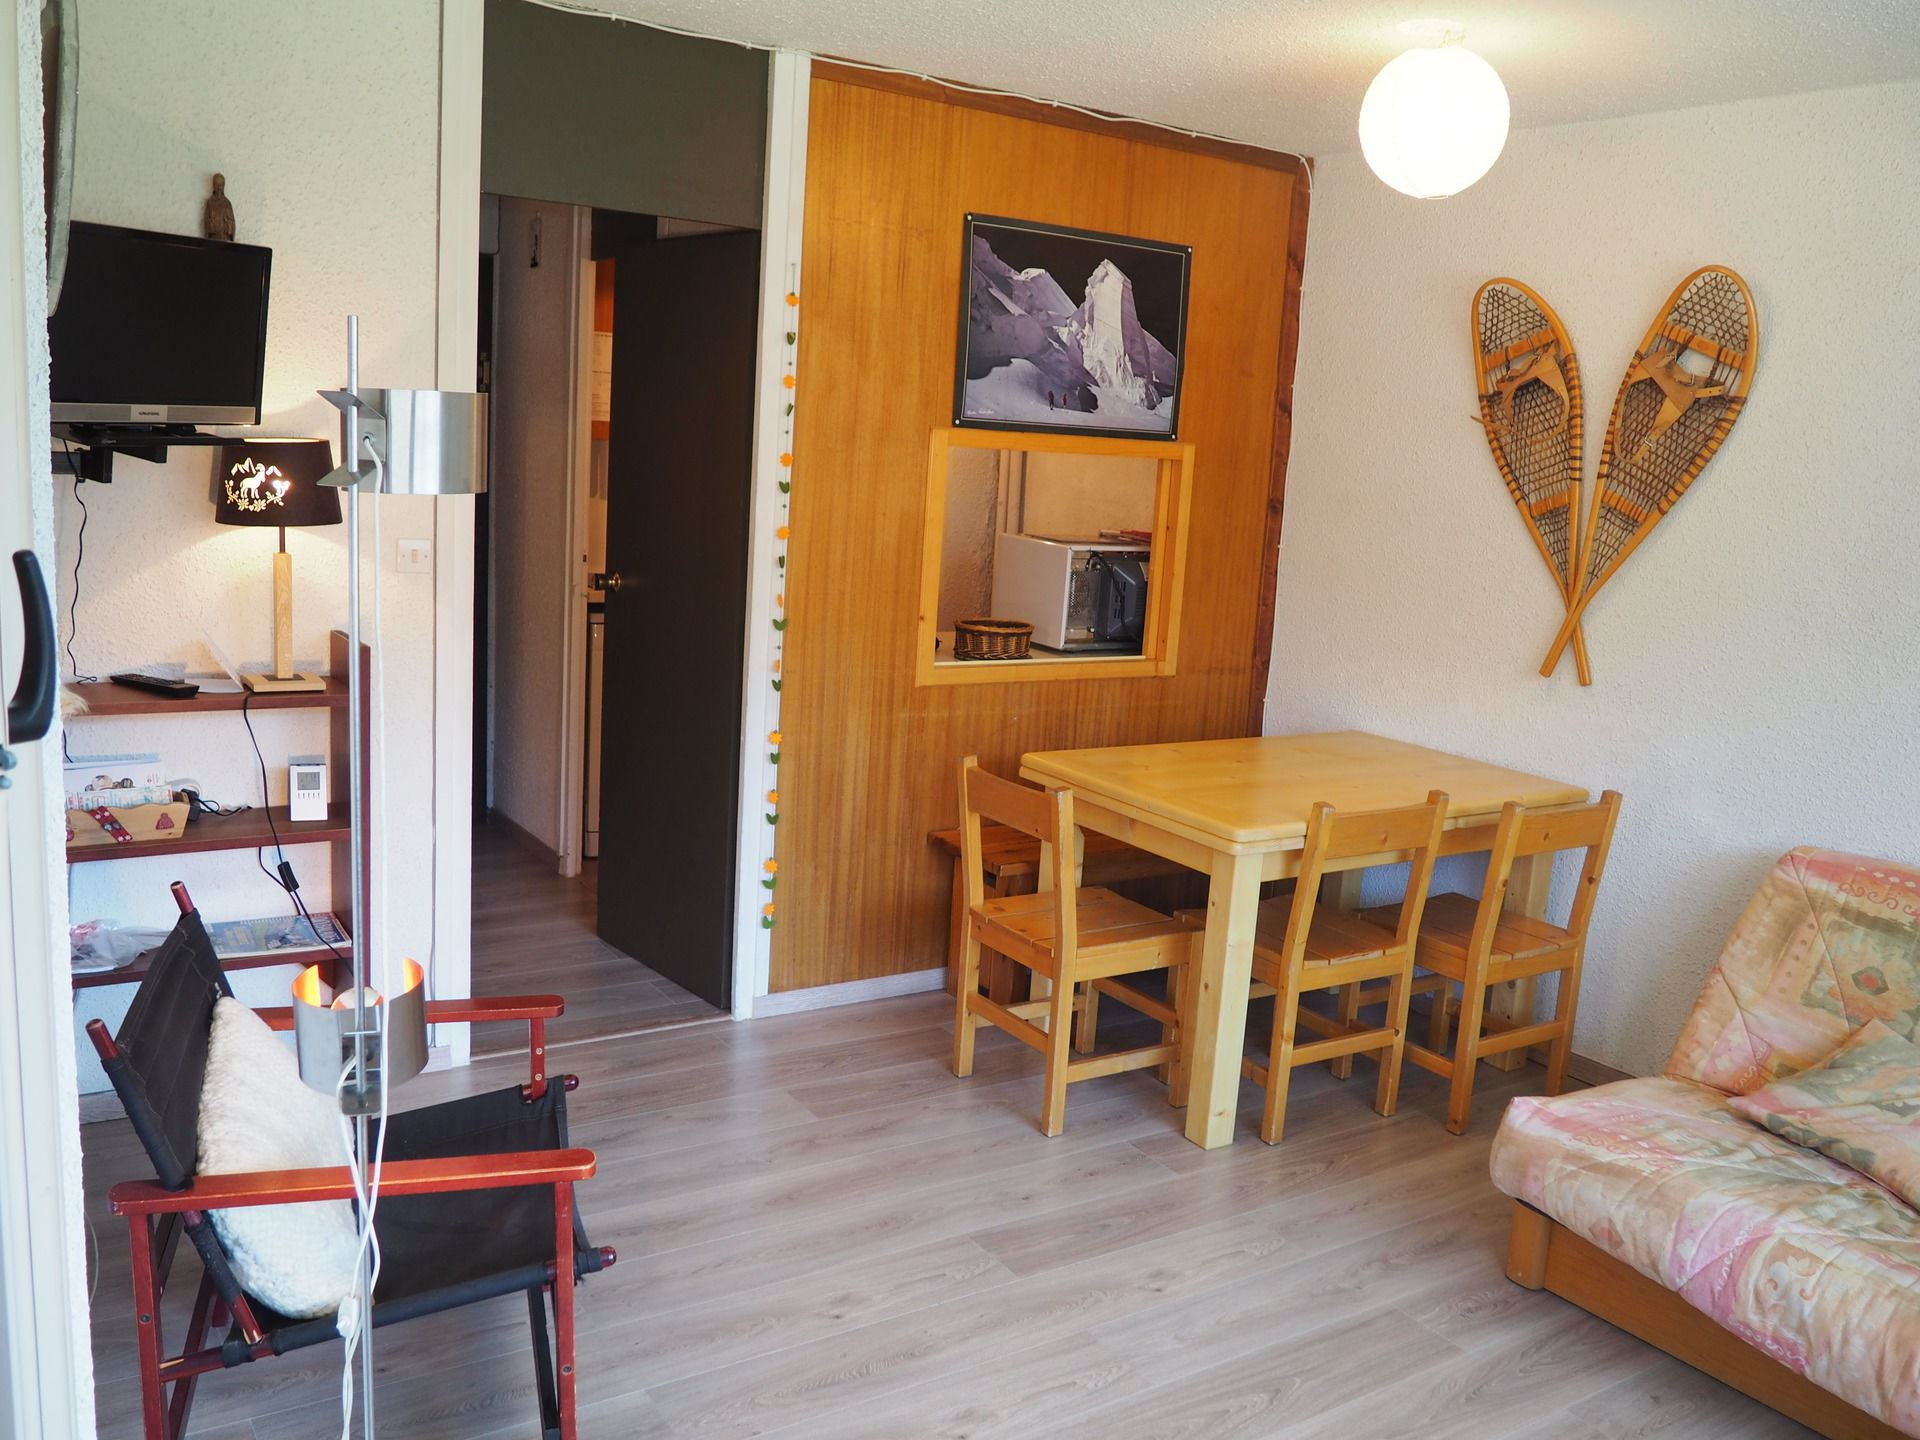 2 Room 6 Pers ski-in ski-out / Aravis 417